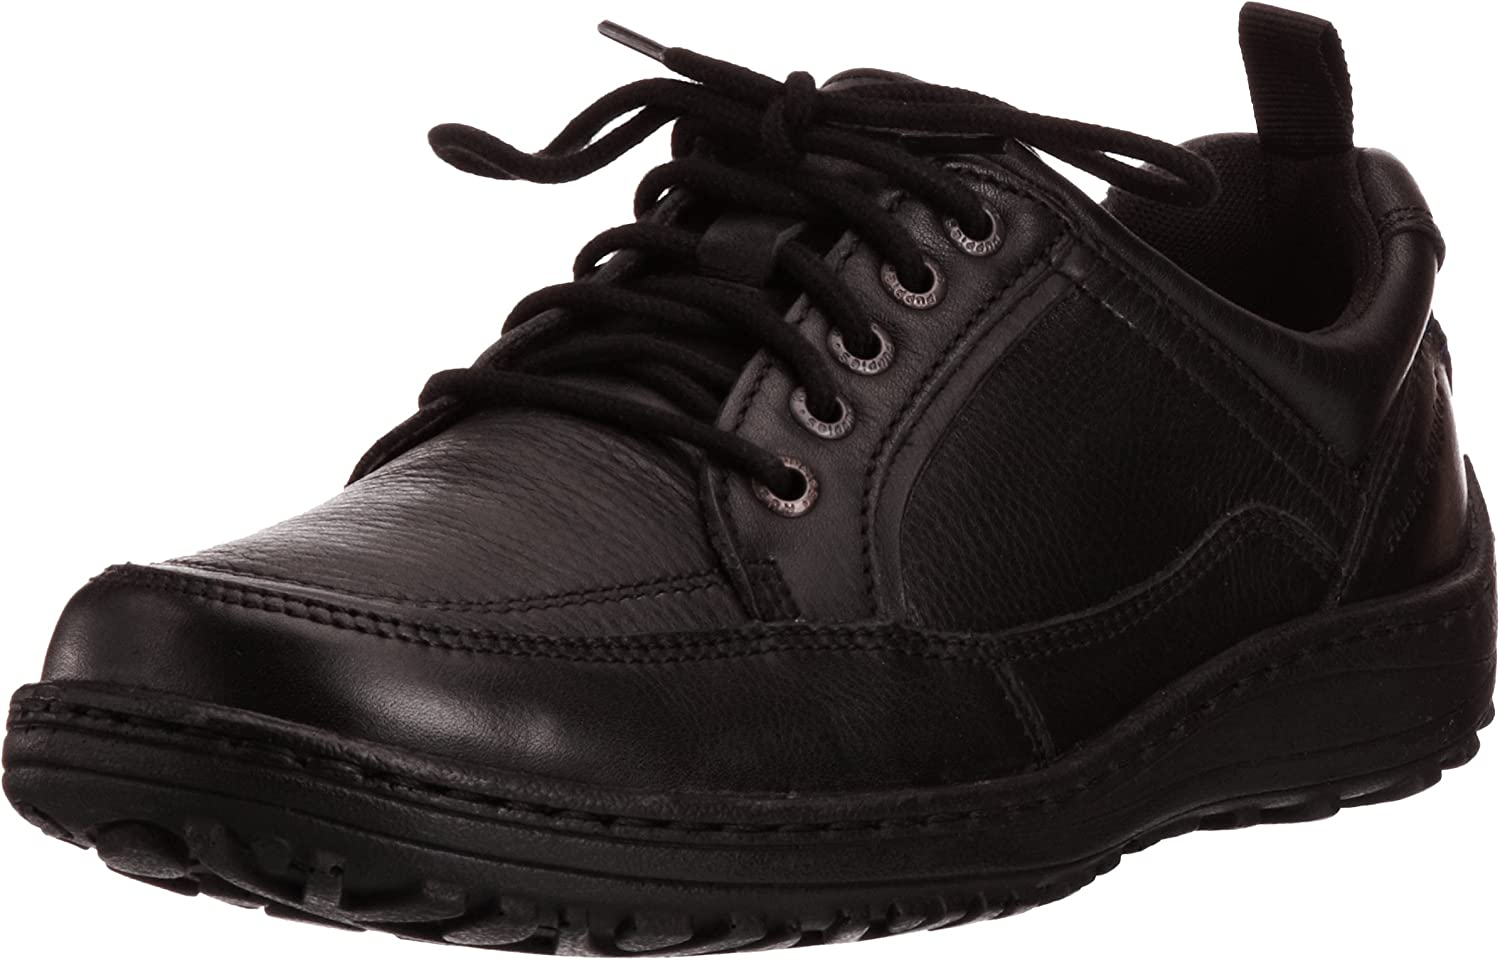 Hush Puppies Men's Belfast Oxford shoes